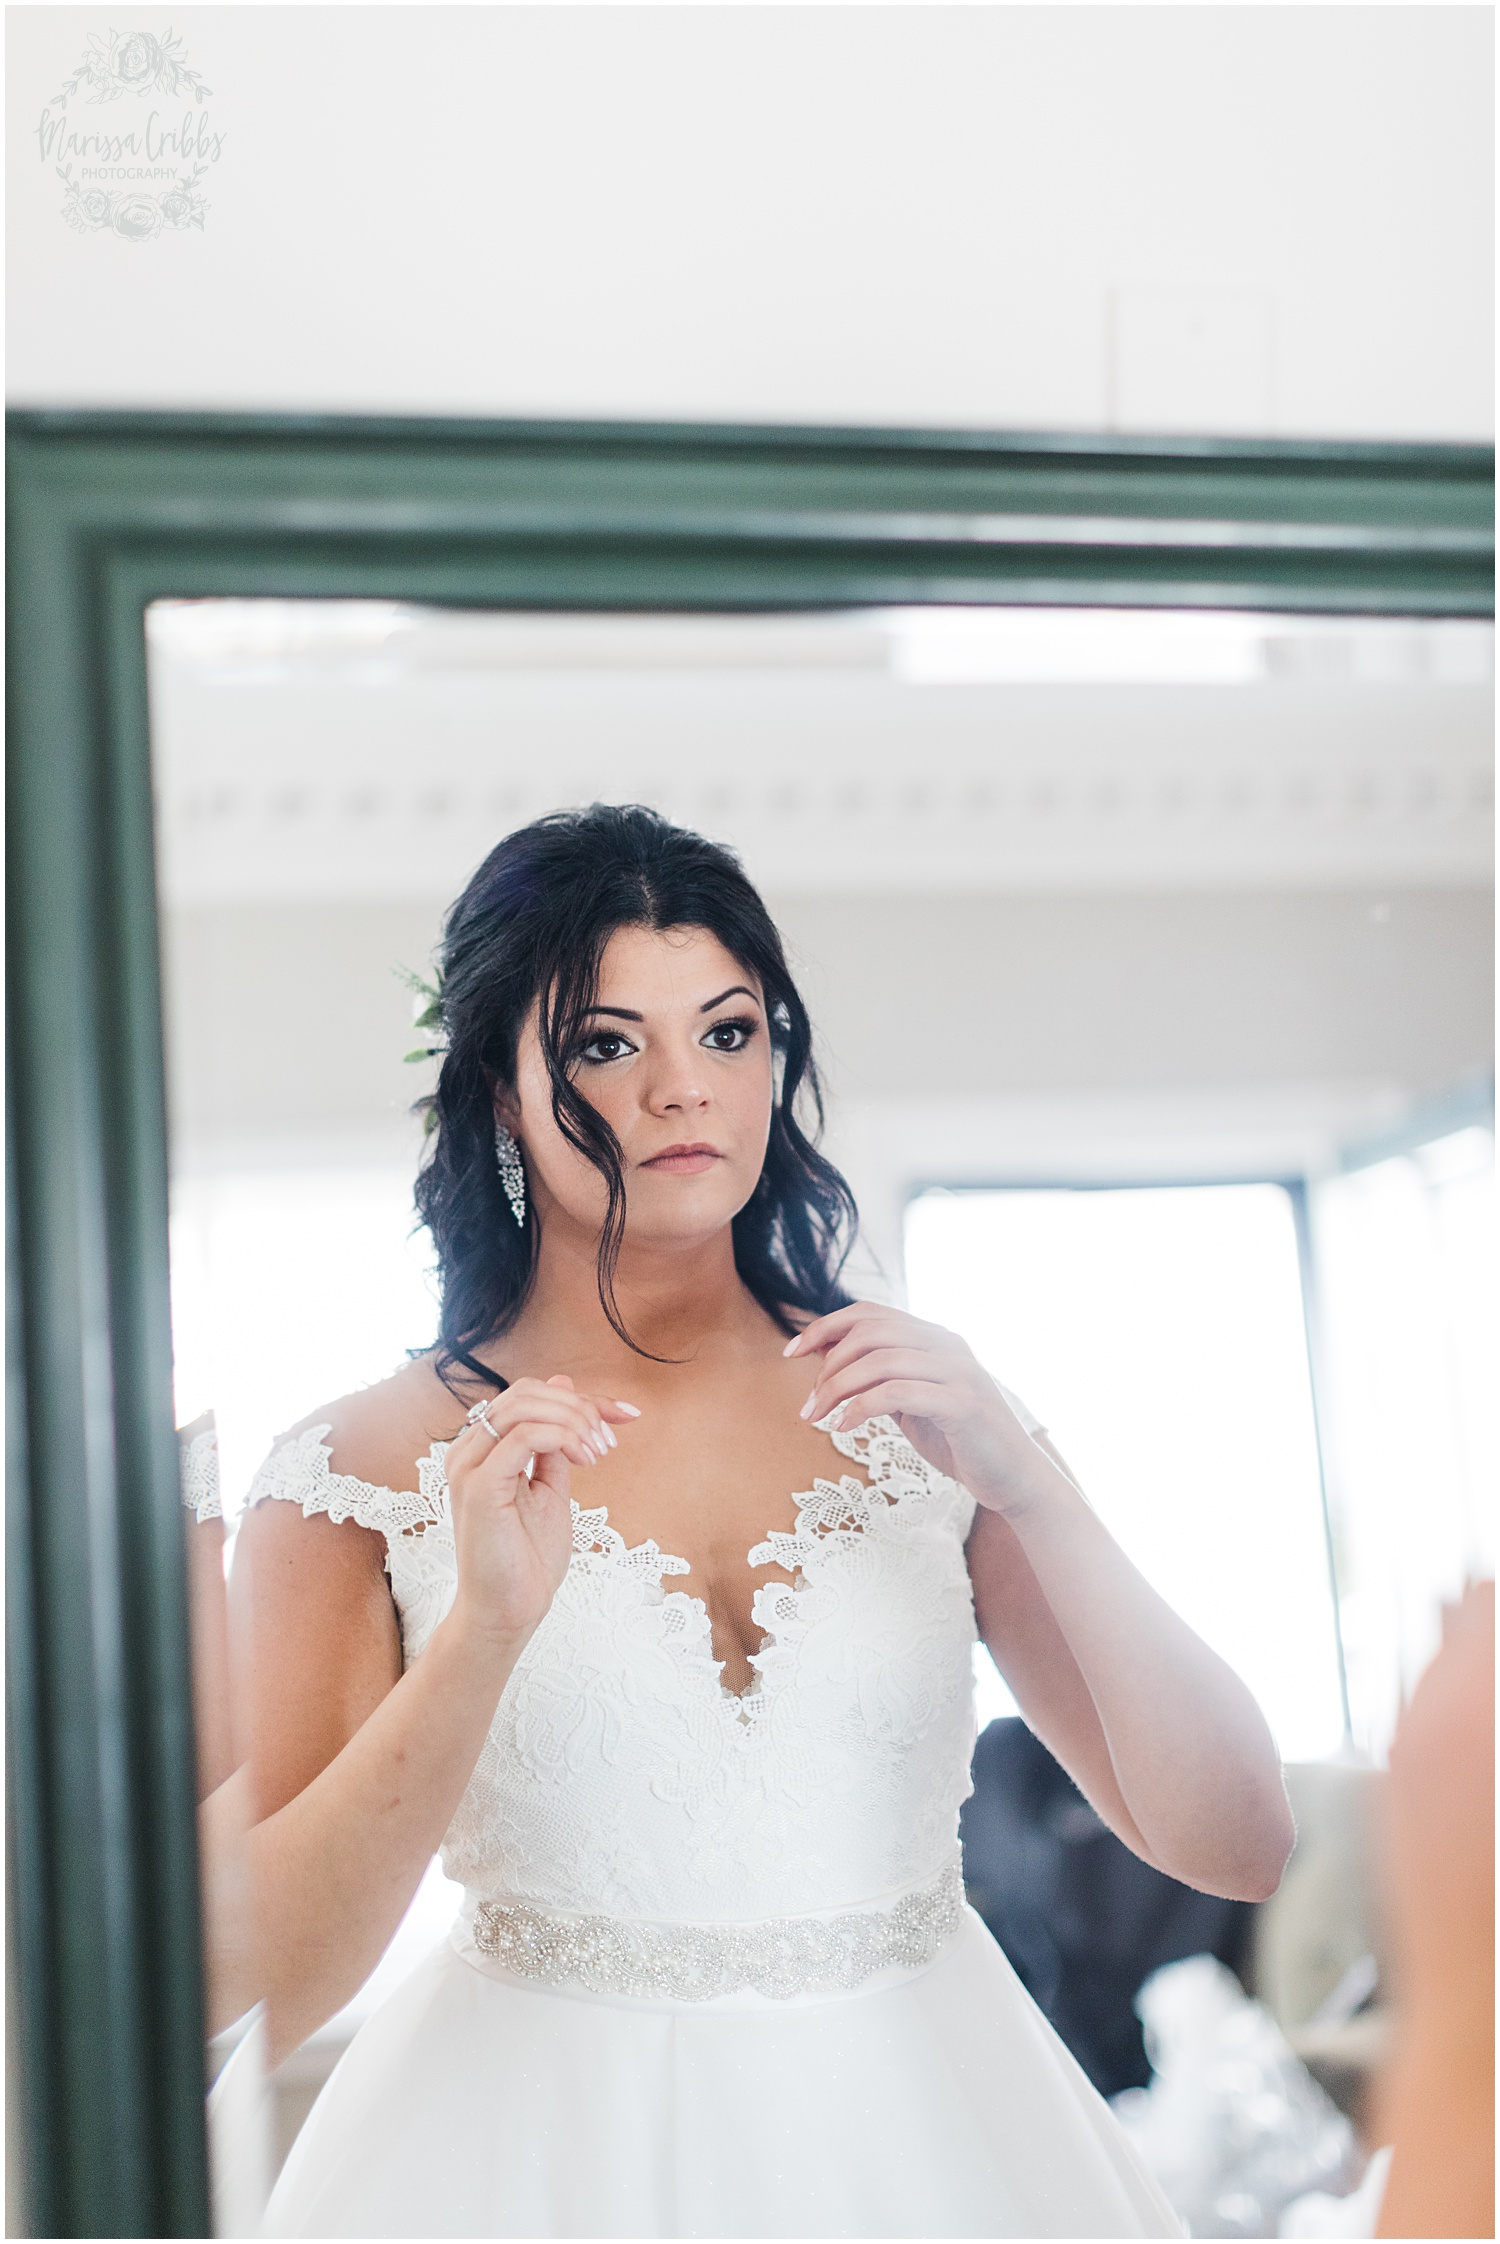 CASEY & GOLDIE MARRIED BLOG | MARISSA CRIBBS PHOTOGRAPHY_7973.jpg